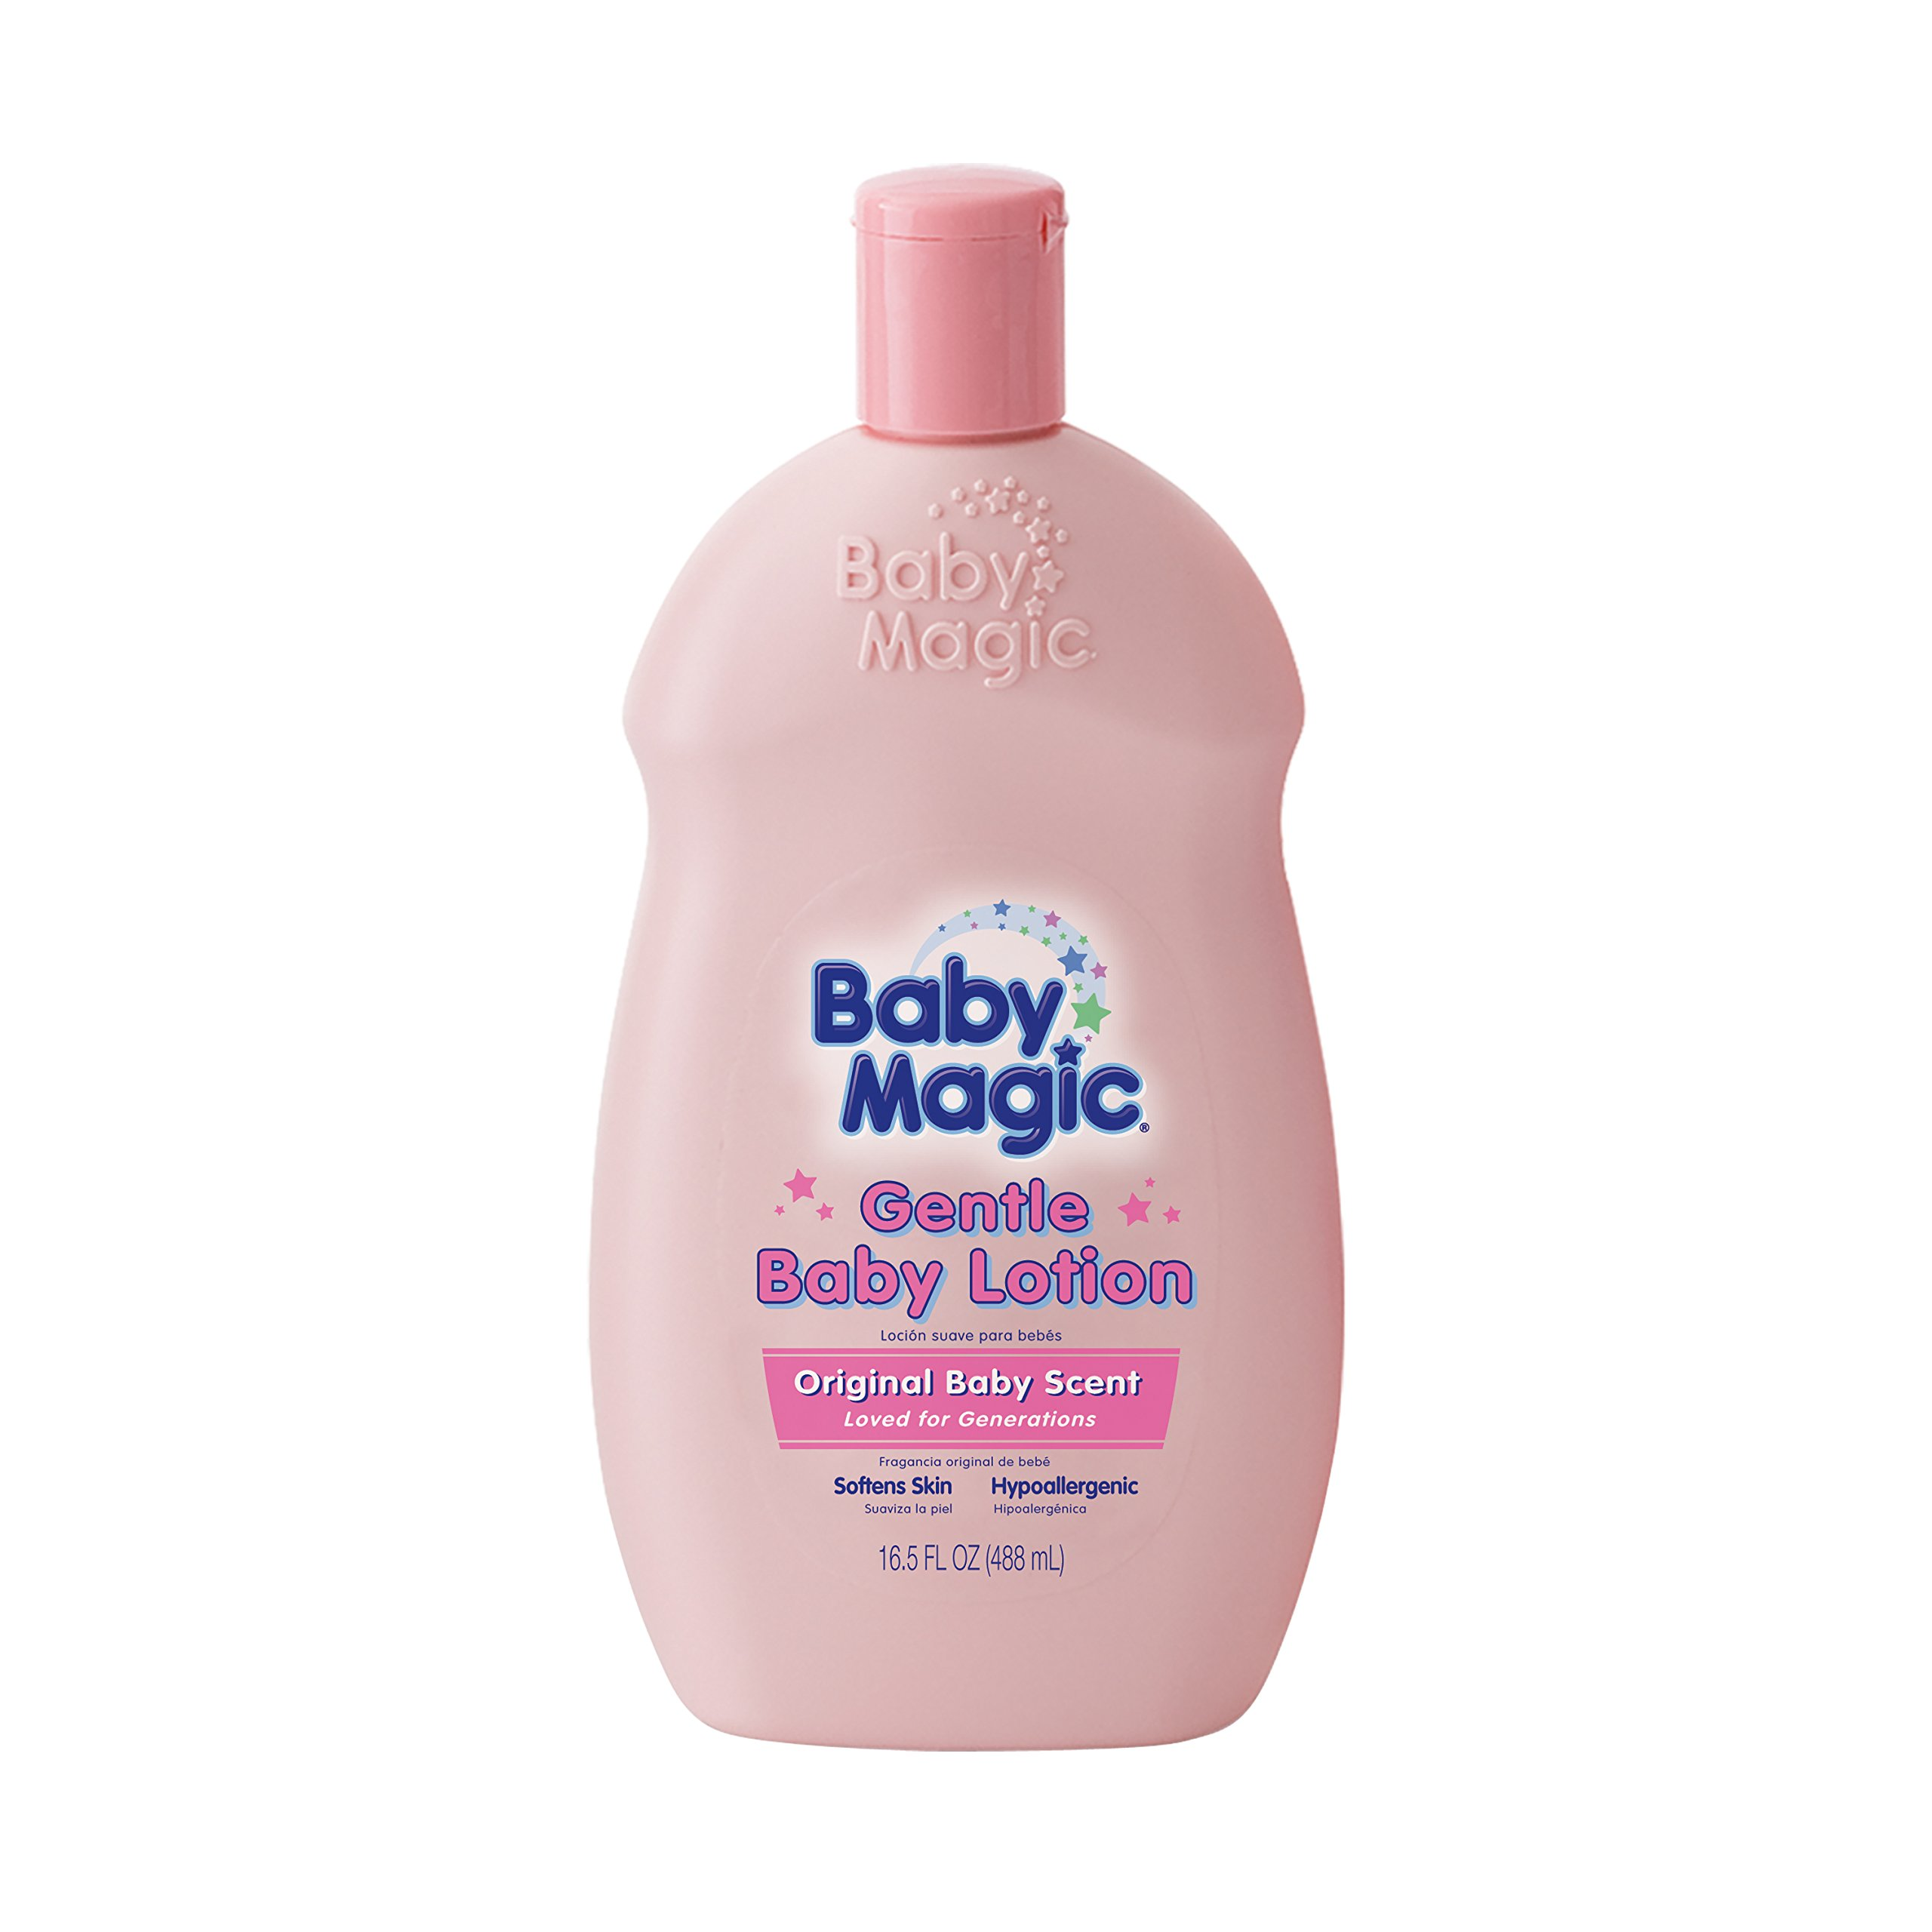 Baby Magic Gentle Baby Lotion Original Baby Scent 16.5 oz.